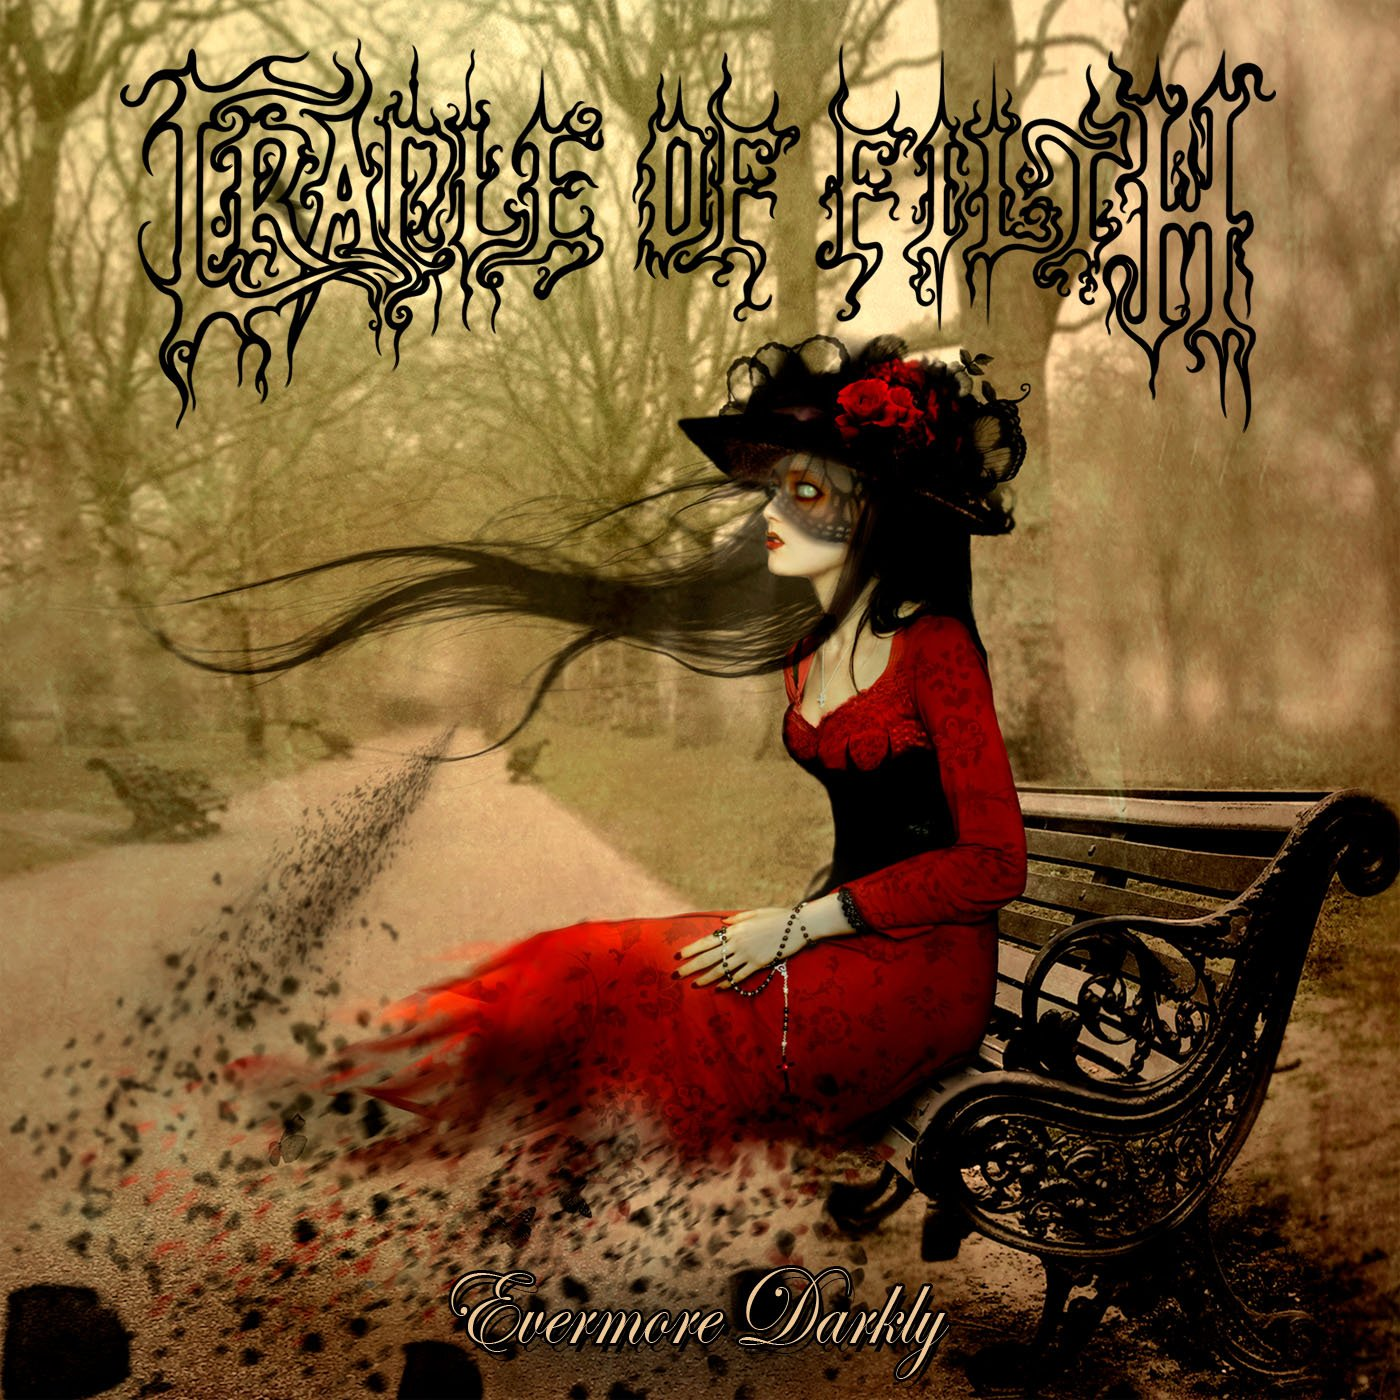 Cradle of Filth Covers Cradle of Filth Evermore